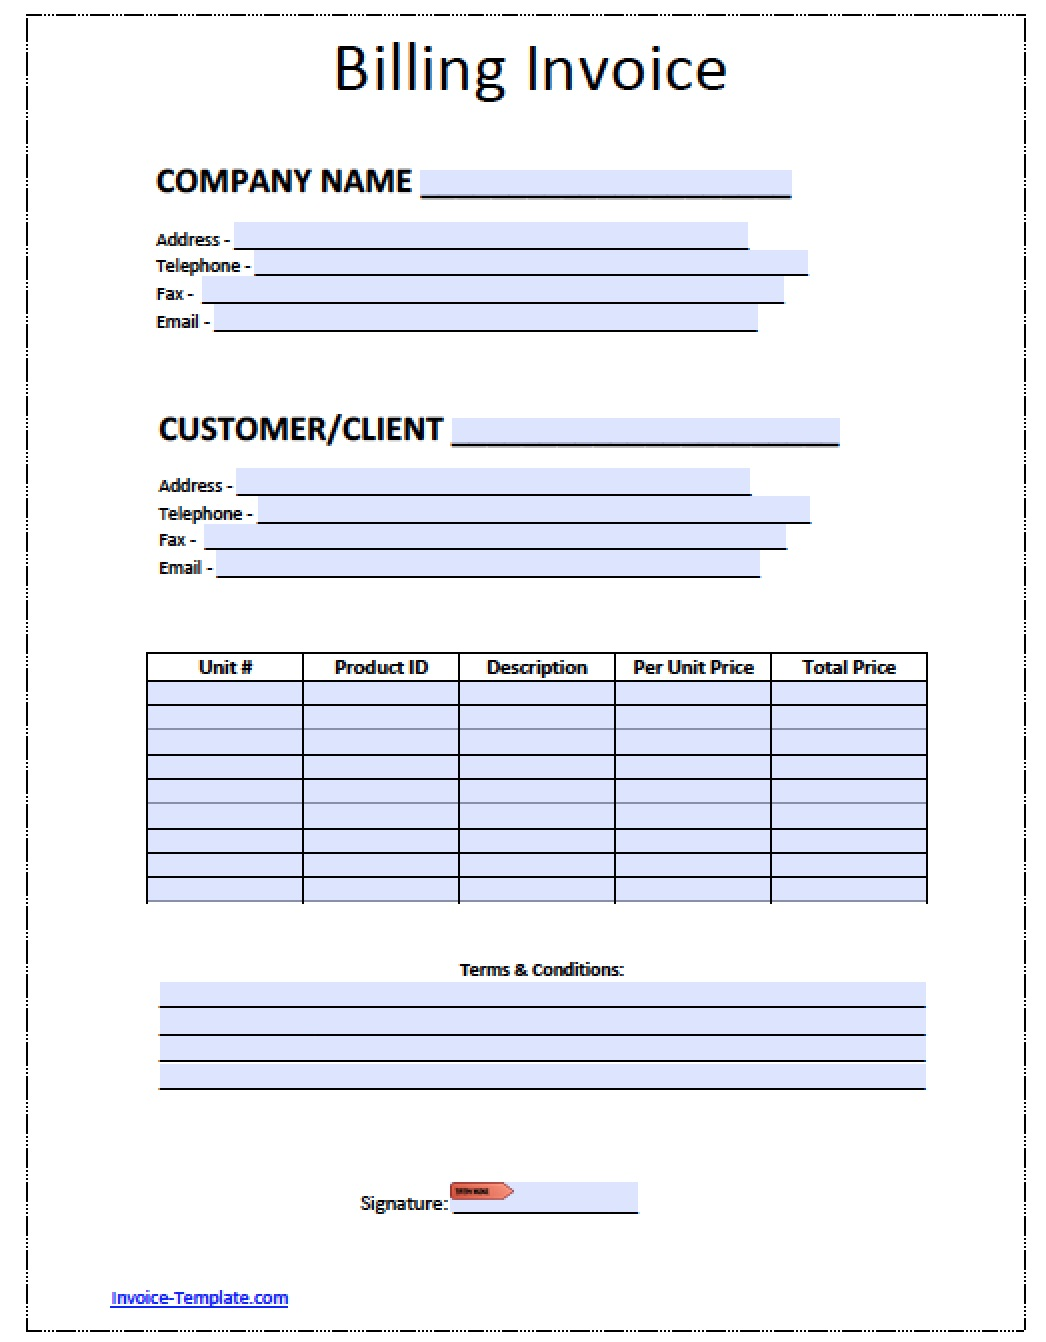 Totallocalus  Pleasing Billing Invoice Invoices Faq U Cloudflare Support Billing  With Hot Free Billing Invoice Template  Excel  Pdf  Word Doc  Billing With Archaic Carbonless Invoice Books Also Fillable Canada Customs Invoice In Addition Invoicing Freeware And Invoicing Software Uk As Well As Cloud Invoicing Software Additionally Confidential Invoice Discounting From Happytomco With Totallocalus  Hot Billing Invoice Invoices Faq U Cloudflare Support Billing  With Archaic Free Billing Invoice Template  Excel  Pdf  Word Doc  Billing And Pleasing Carbonless Invoice Books Also Fillable Canada Customs Invoice In Addition Invoicing Freeware From Happytomco